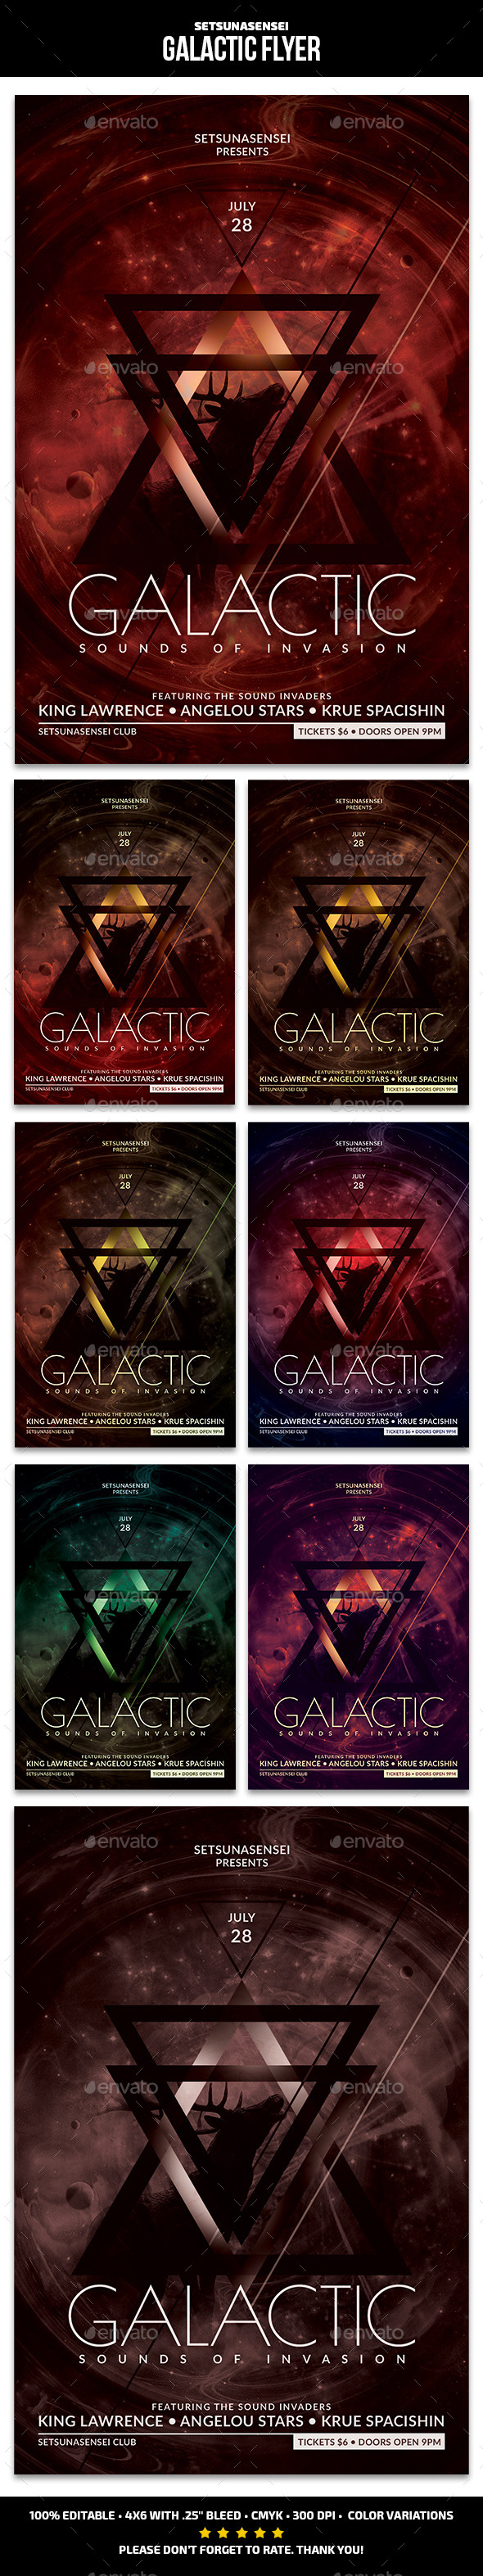 GraphicRiver Galactic Flyer 11175196